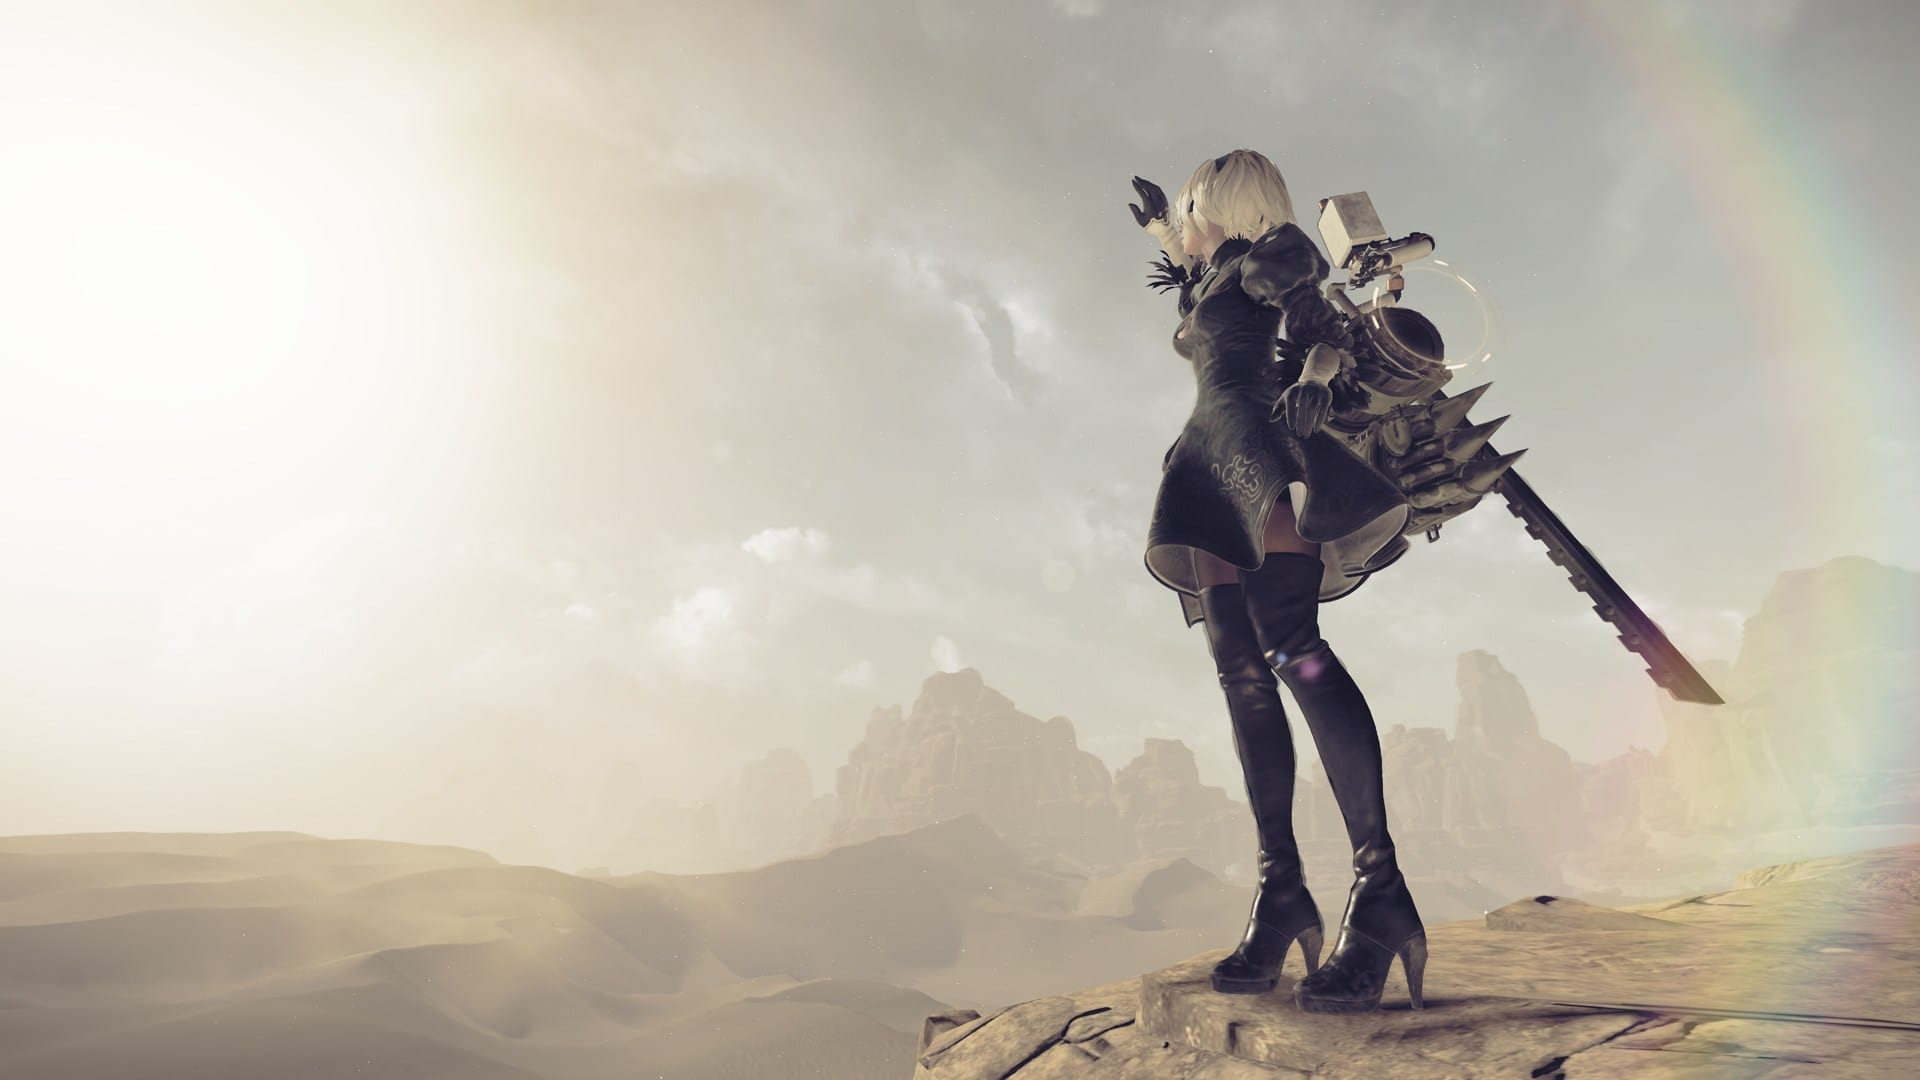 Nier Automata 1920x1080 Wallpaper Posted By Samantha Anderson